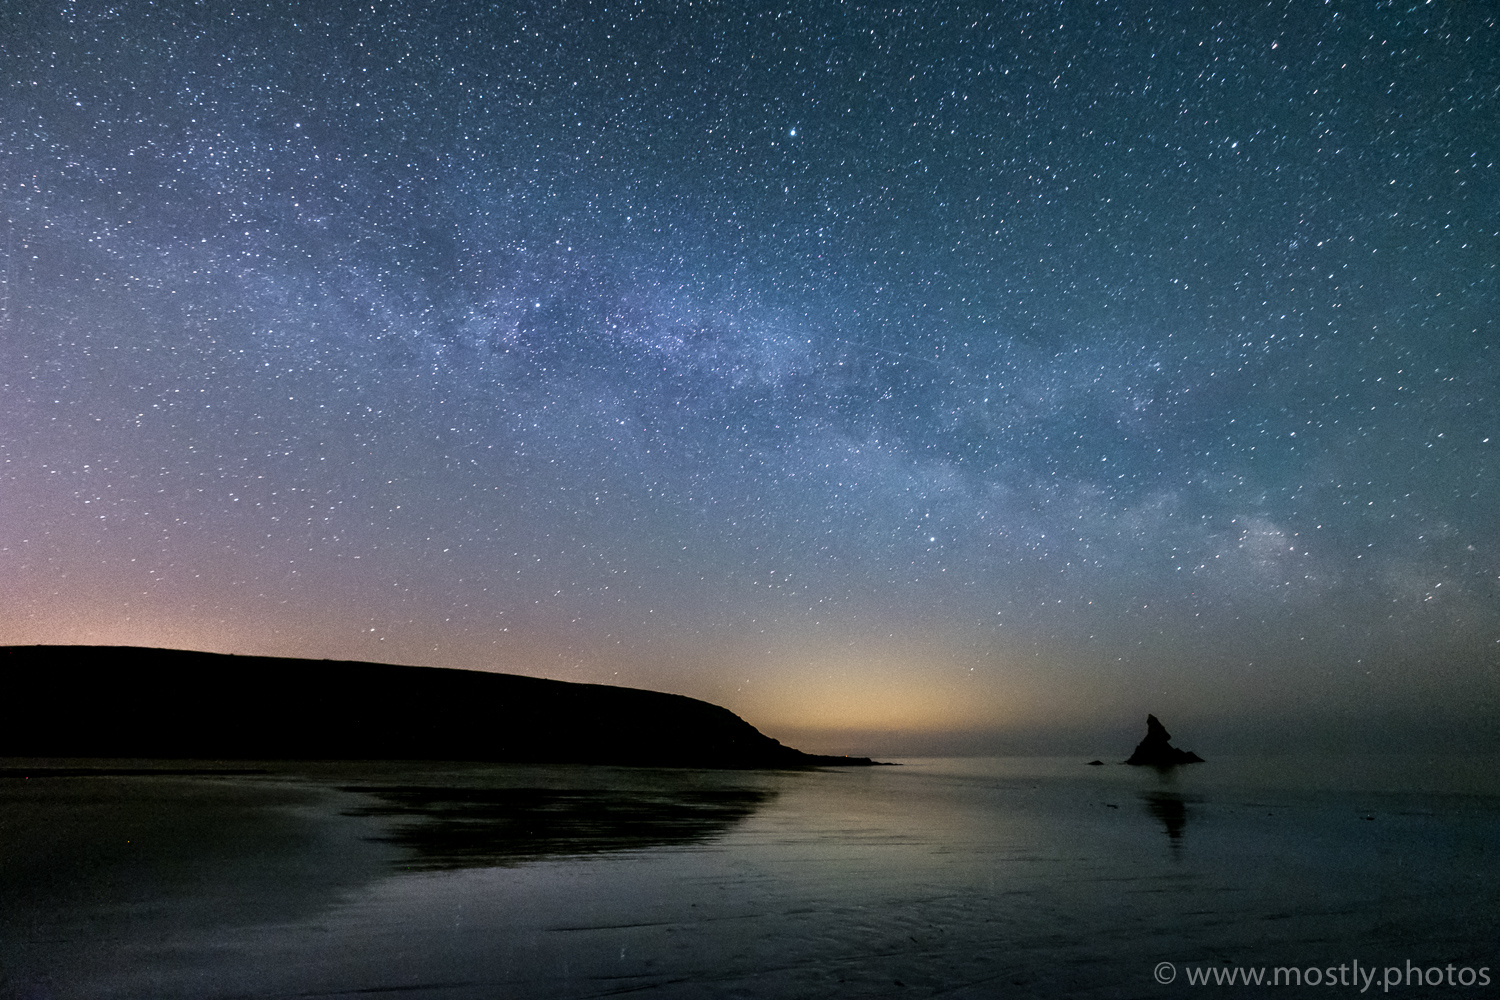 Fuji X-T2 - Fuji 10-24mm f4 - (40 second exposure, ISO 12800, f4)  Milky Way and shooting Star over Church Rock  - Broad Haven Beach, Wales